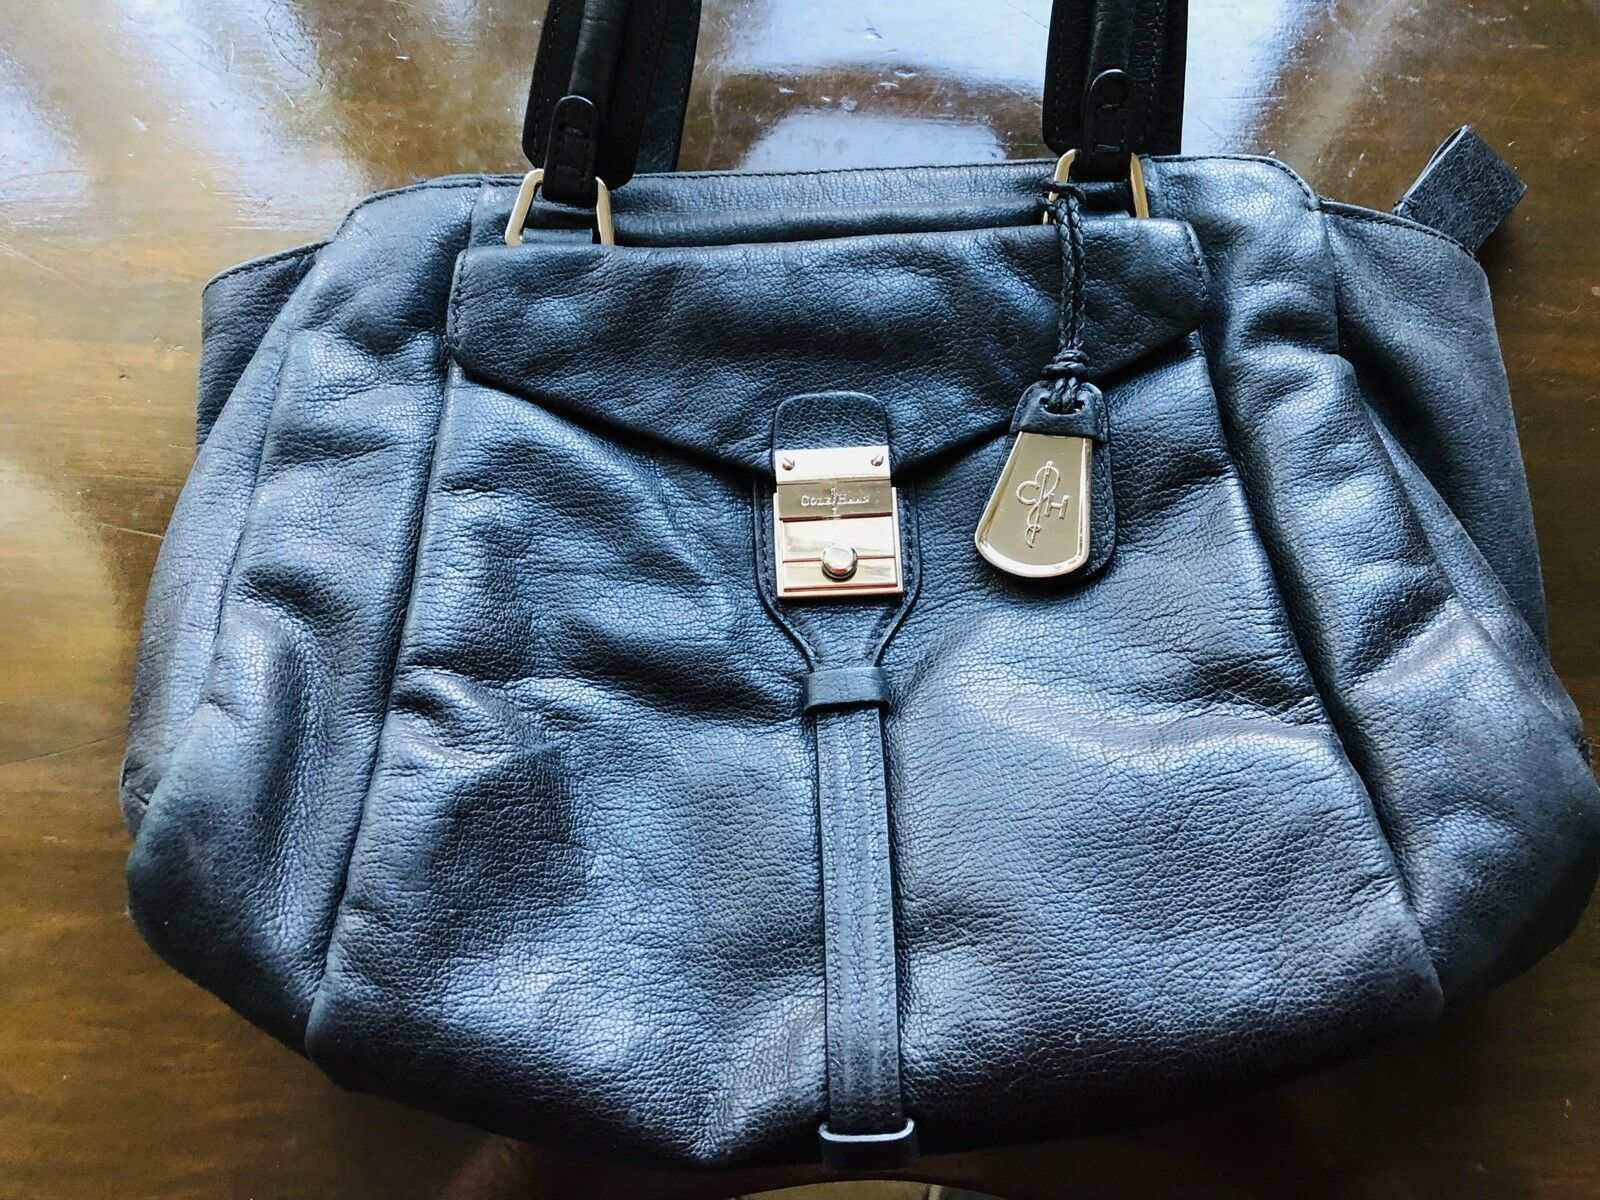 e8c75eb669f 57. 57. Previous. Cole Haan Black Pebbled Leather Med Satchel, Handbag,Purse.  Cole Haan Black Pebbled ...